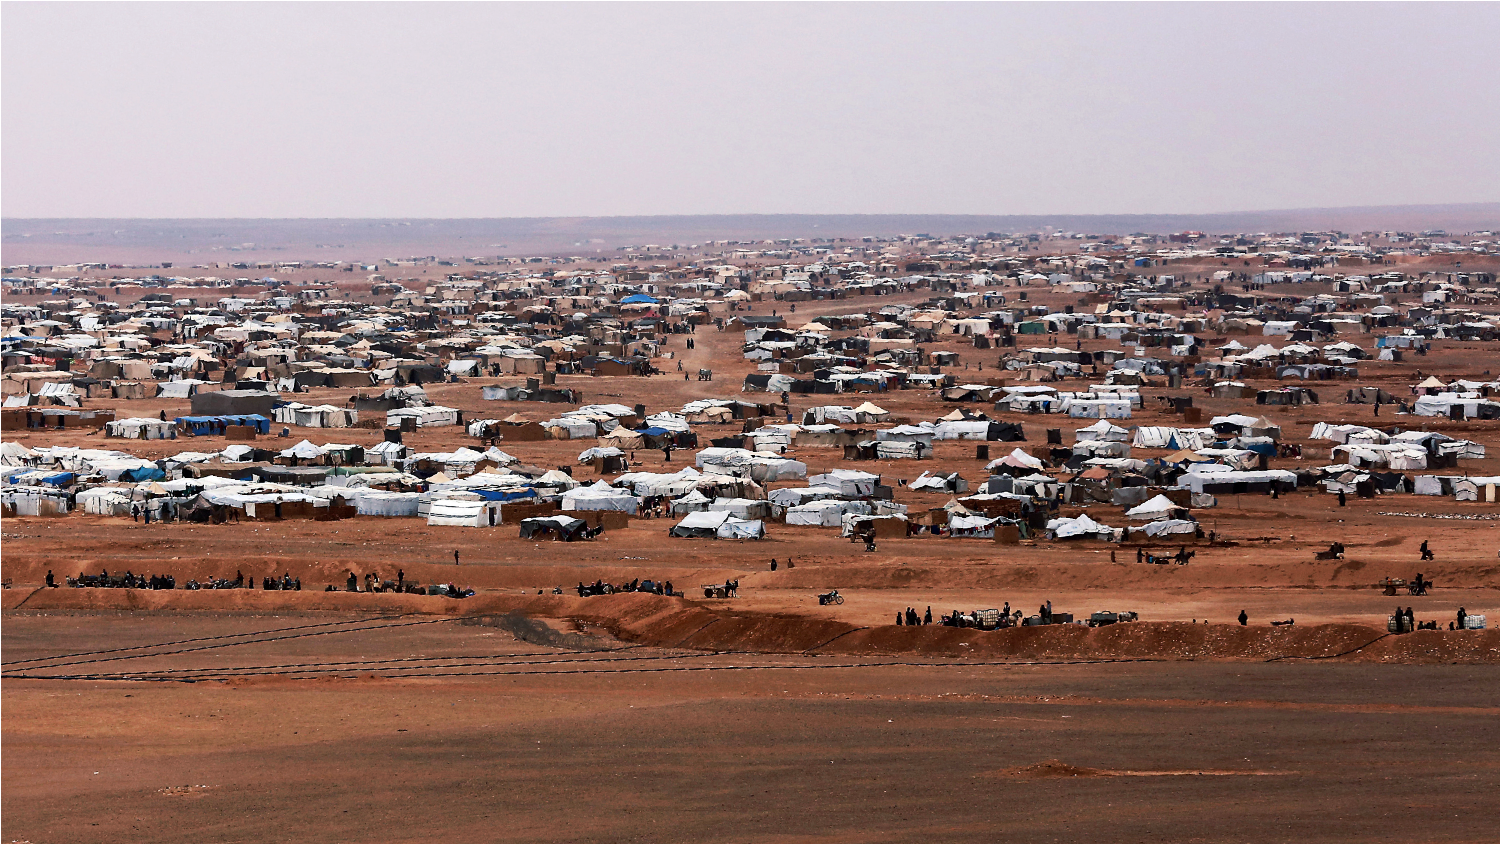 Hadalat Refugee Camp